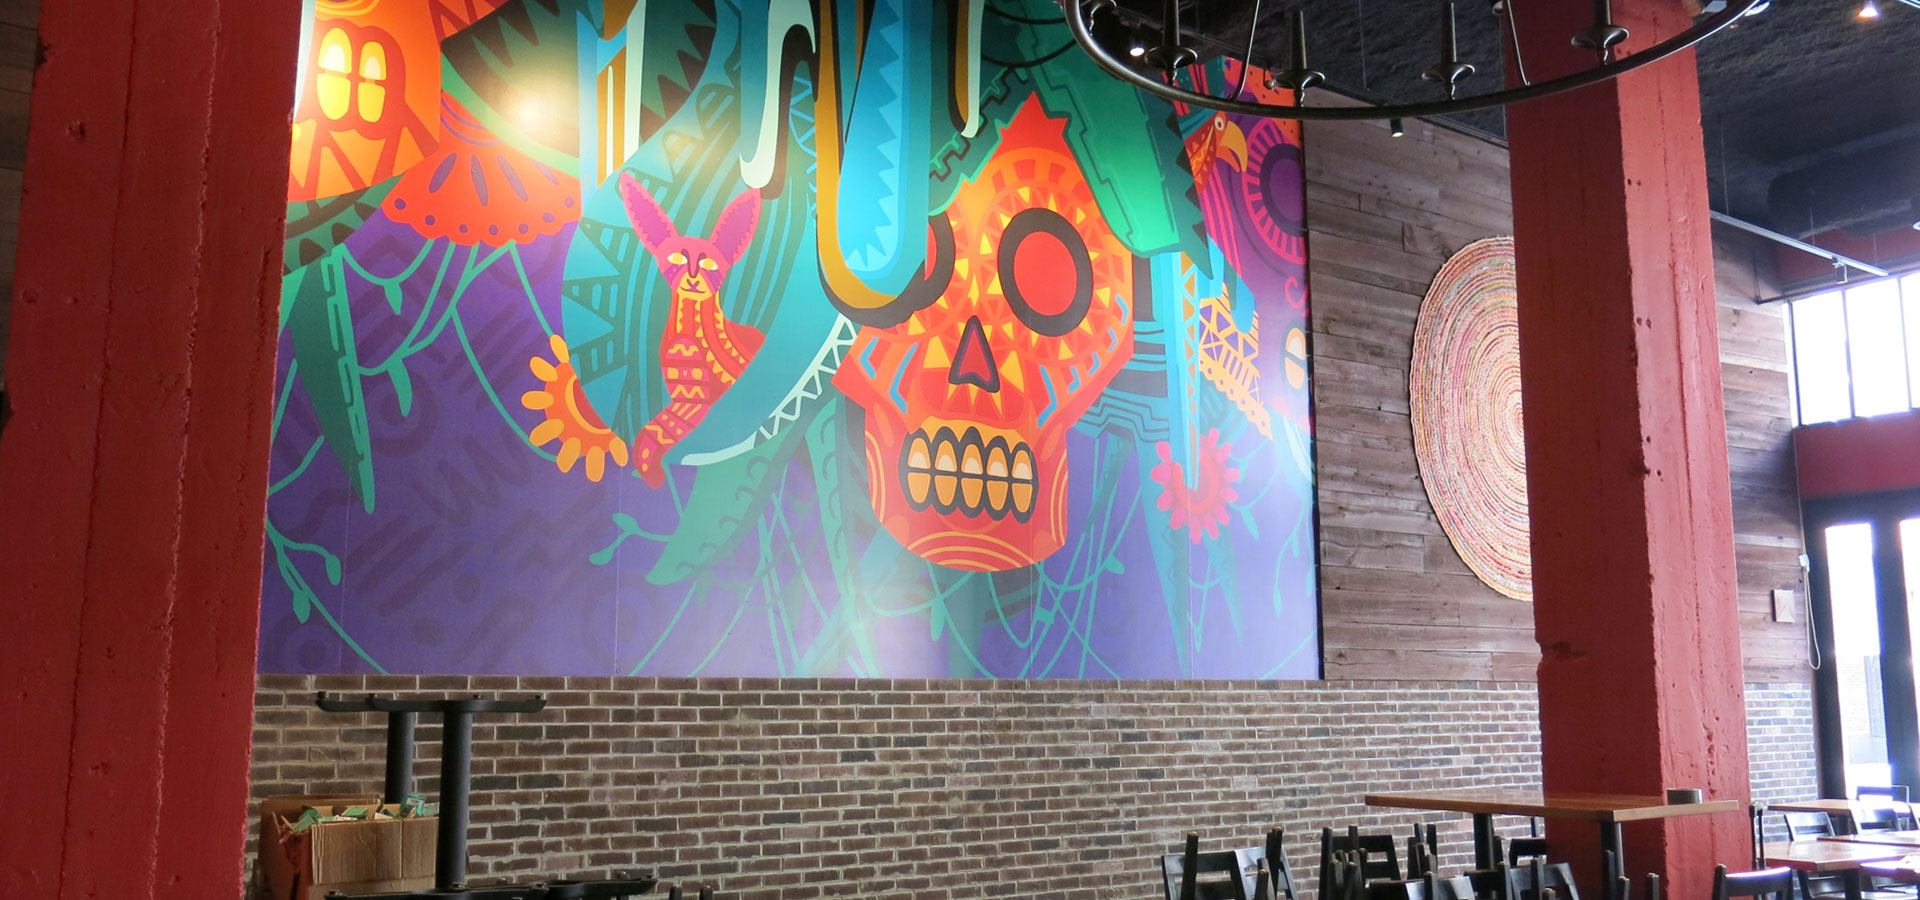 A decorative illustrated mural of a Mexican inspired skull and animals in a restaurant seating area